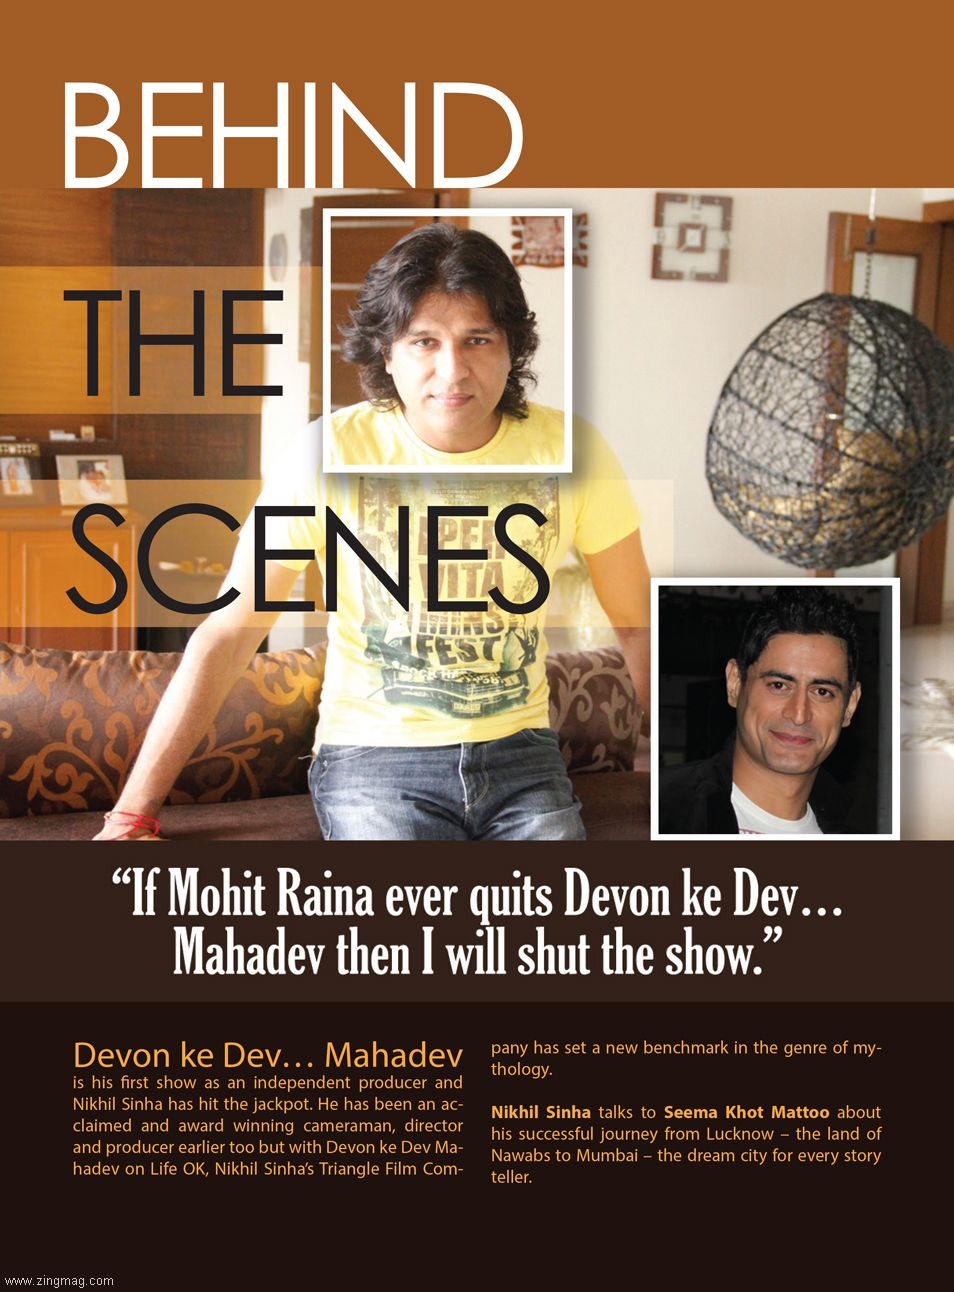 Behind the Scenes - Mohit Raina